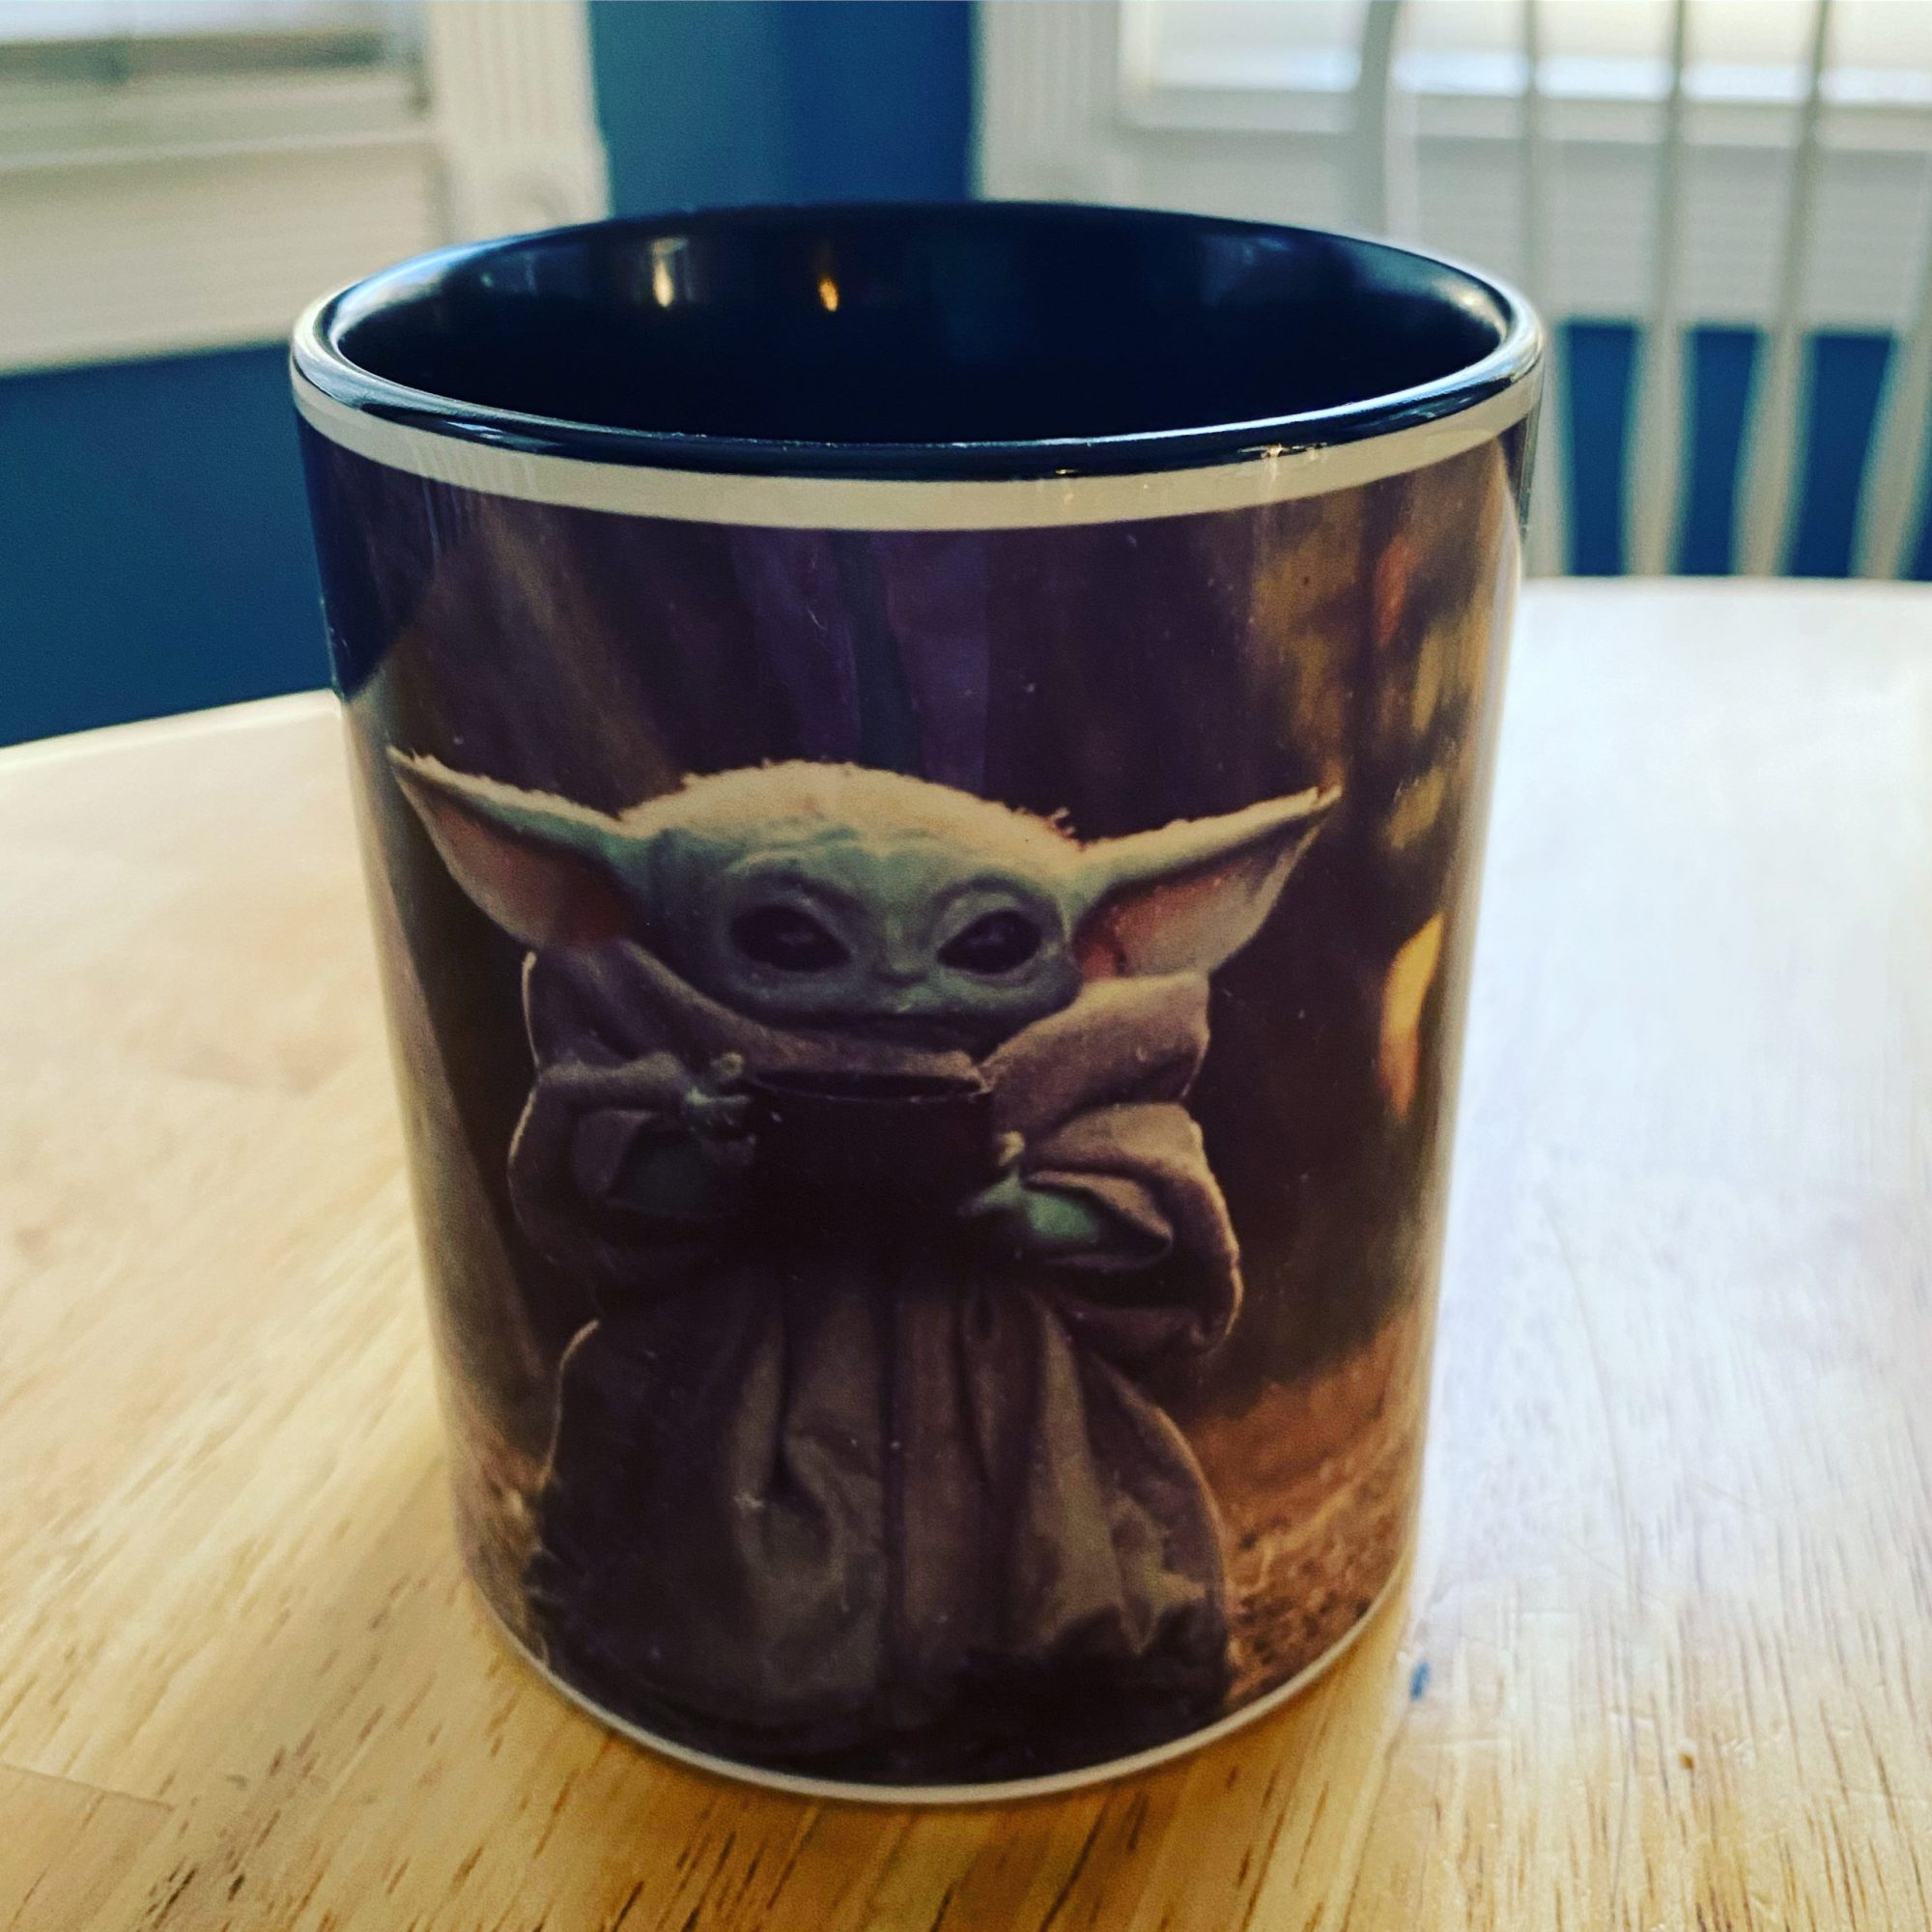 Baby Yoda coffee mug #disneymugs denise m. colby post